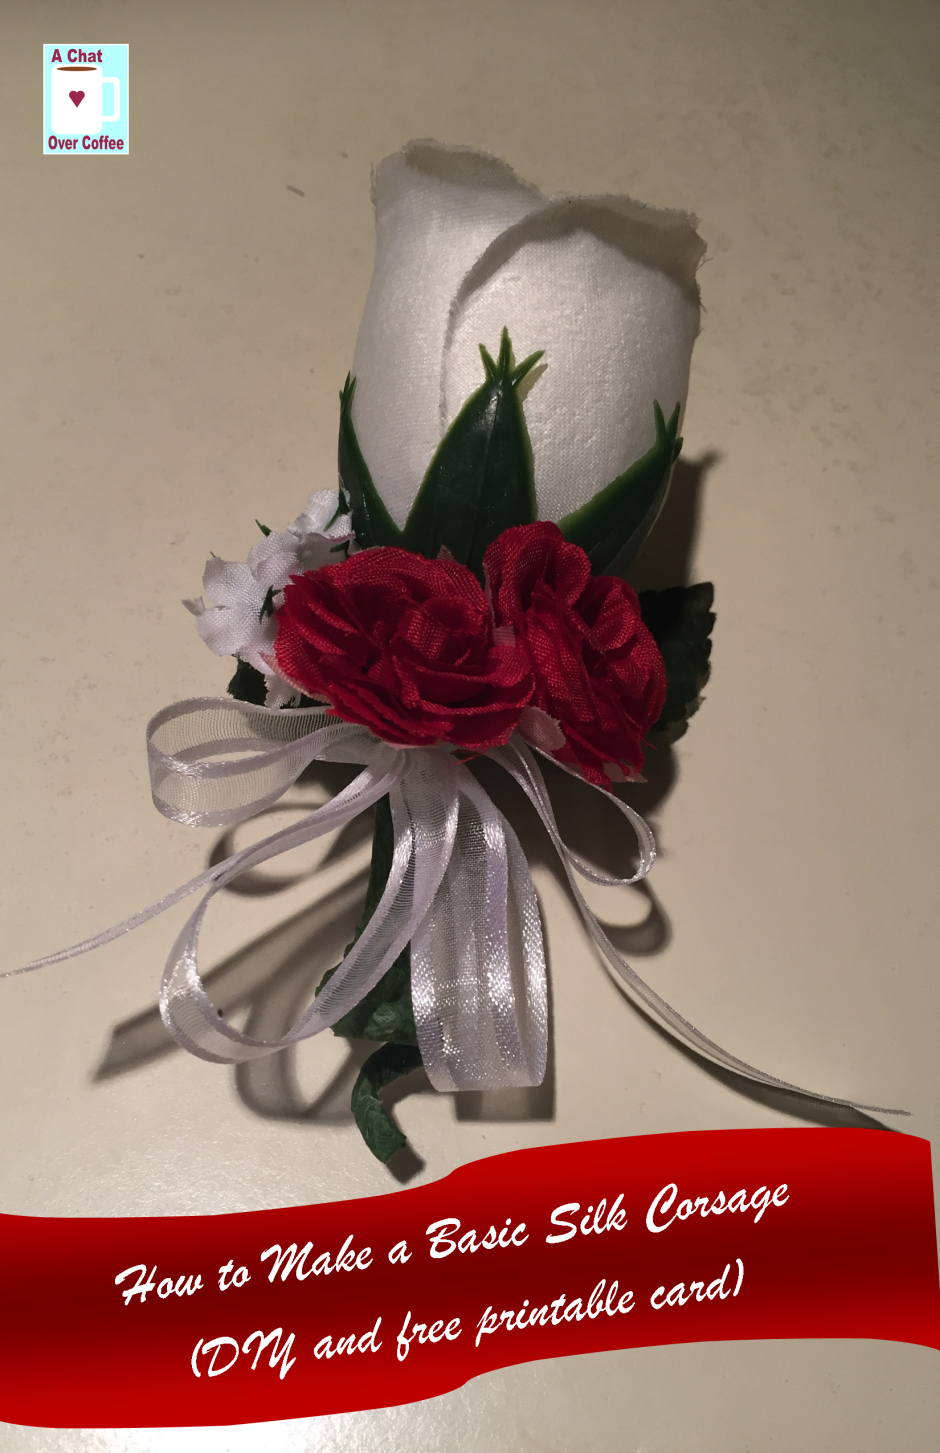 How To Make A Basic Silk Corsage Diy And Free Printable Card From A